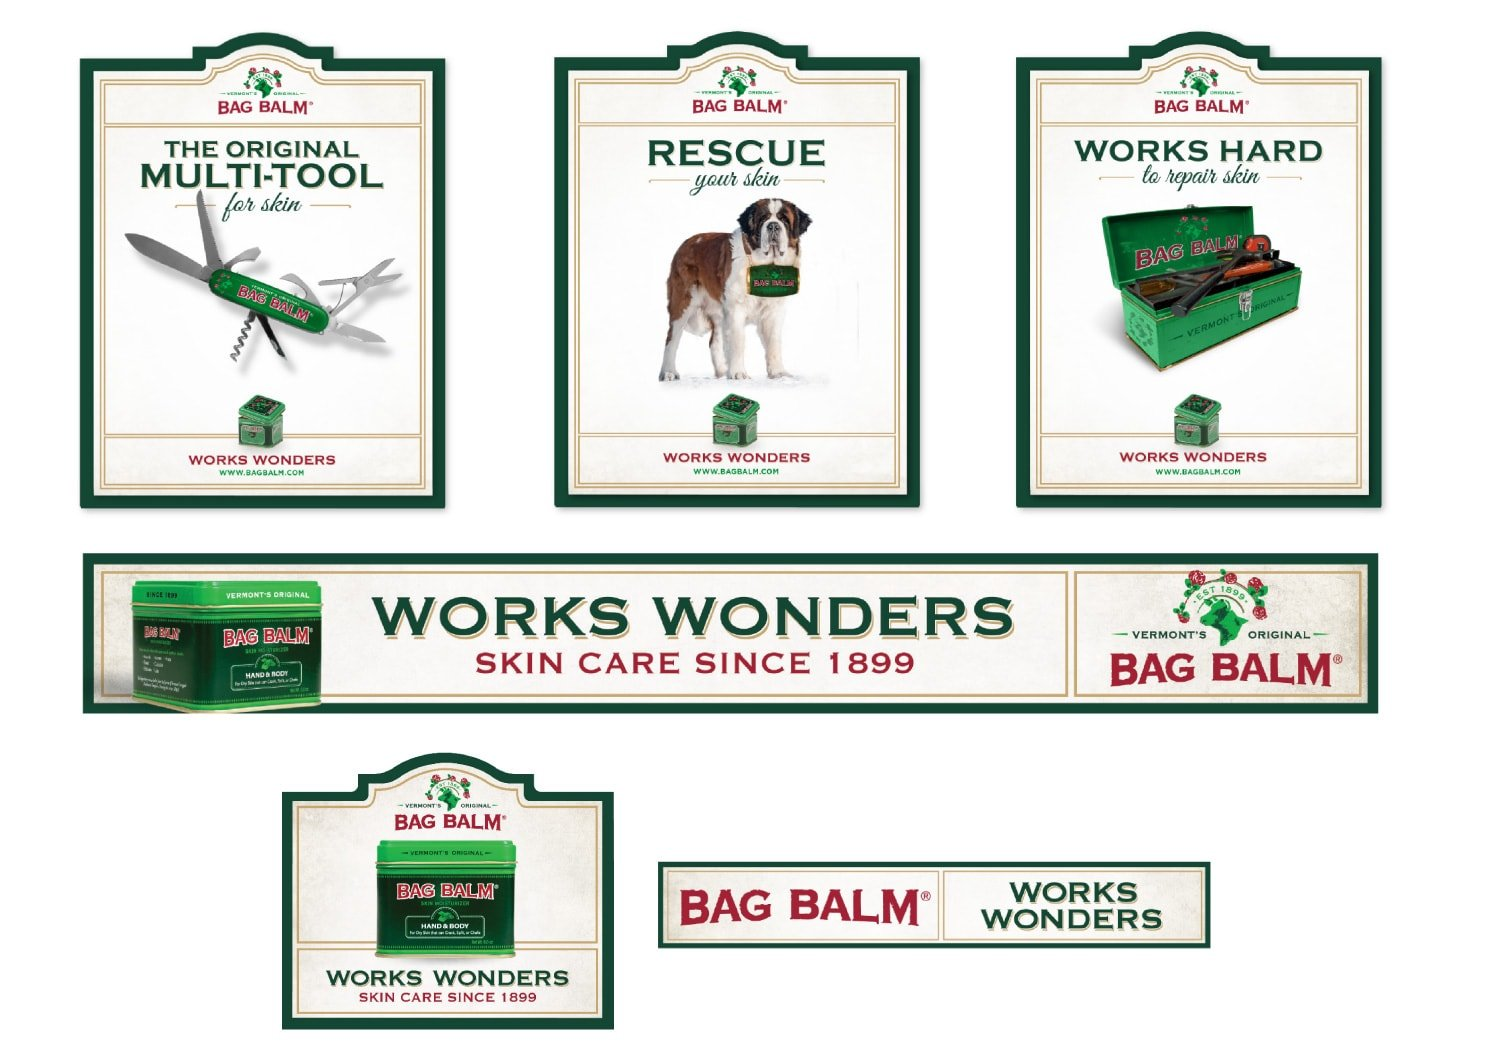 Bag Balm Digital Ads